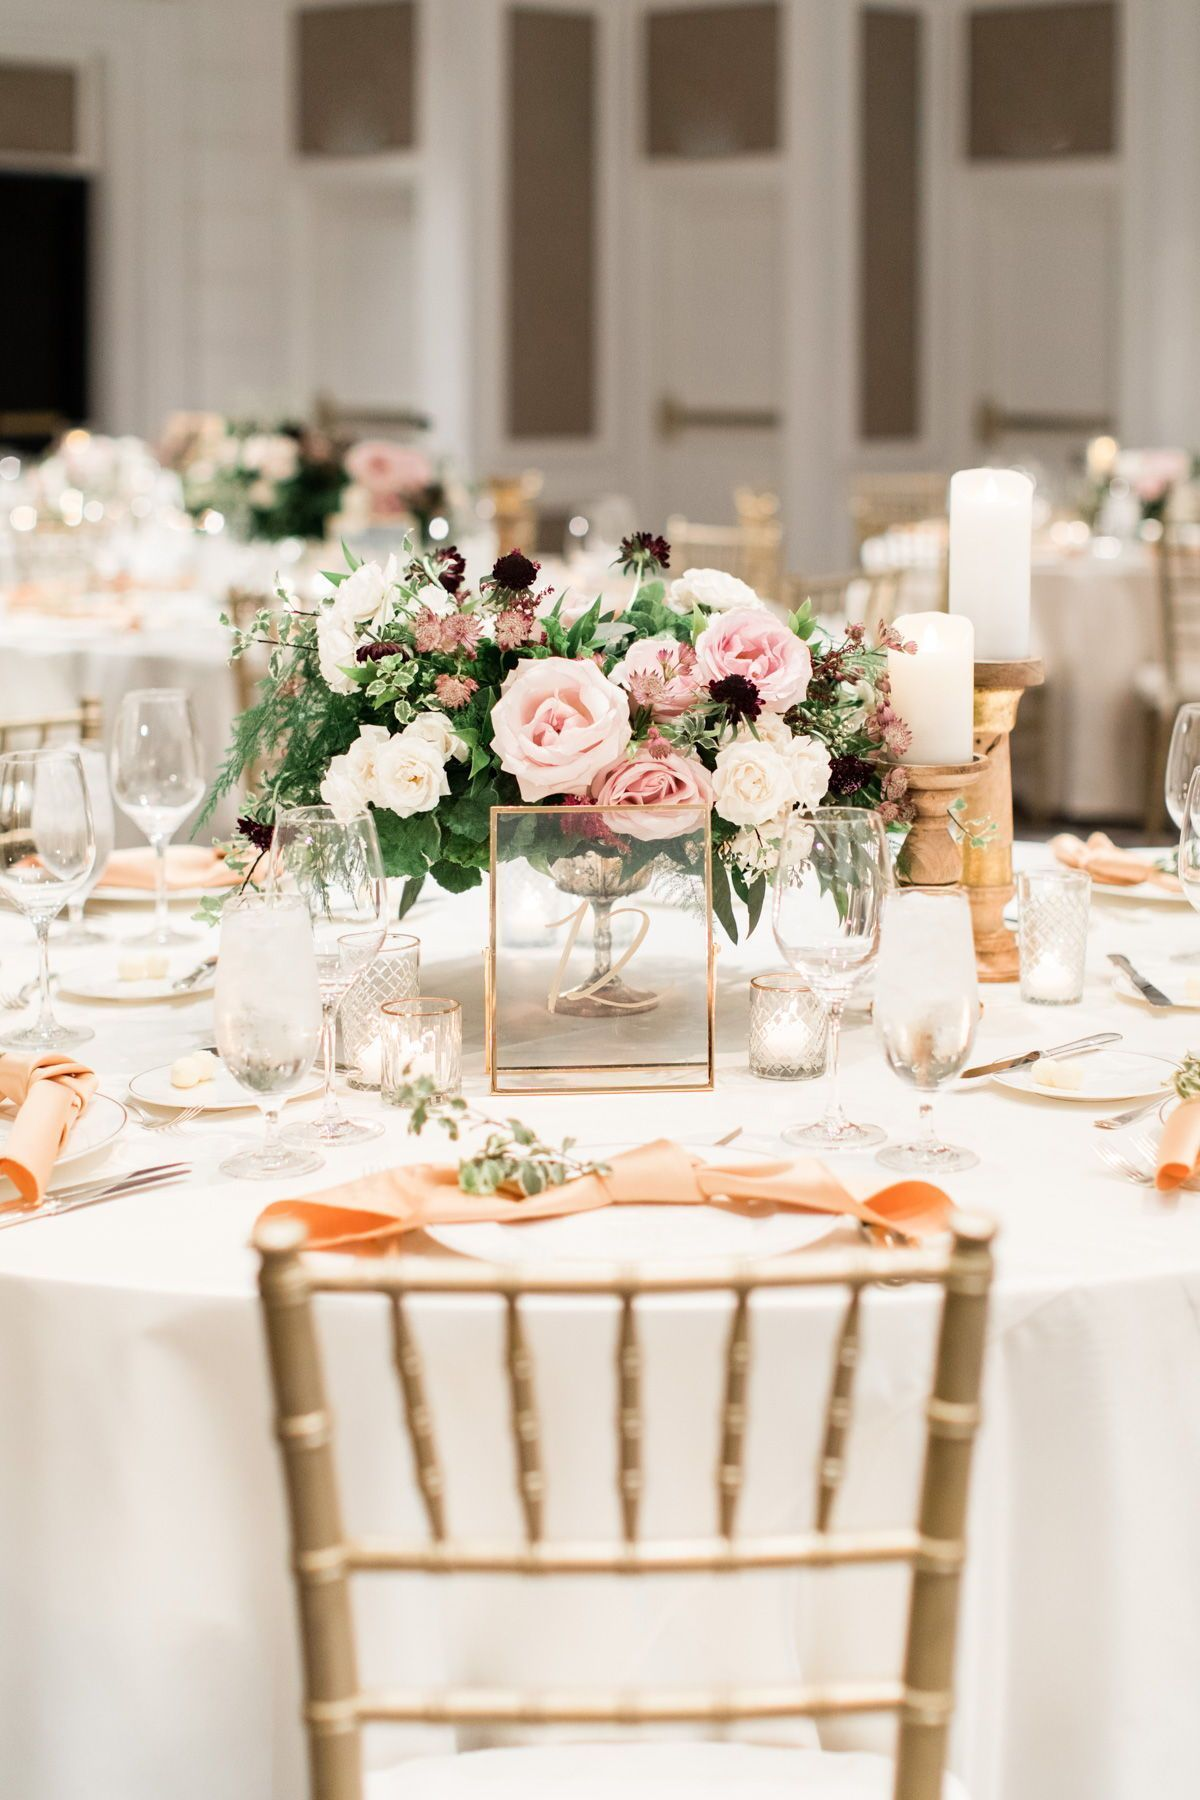 The Us Grant Hotel Wedding Venue Tour In San Diego Ca In 2020 Wedding Floral Centerpieces Wedding Table Pink Pink And Gold Wedding